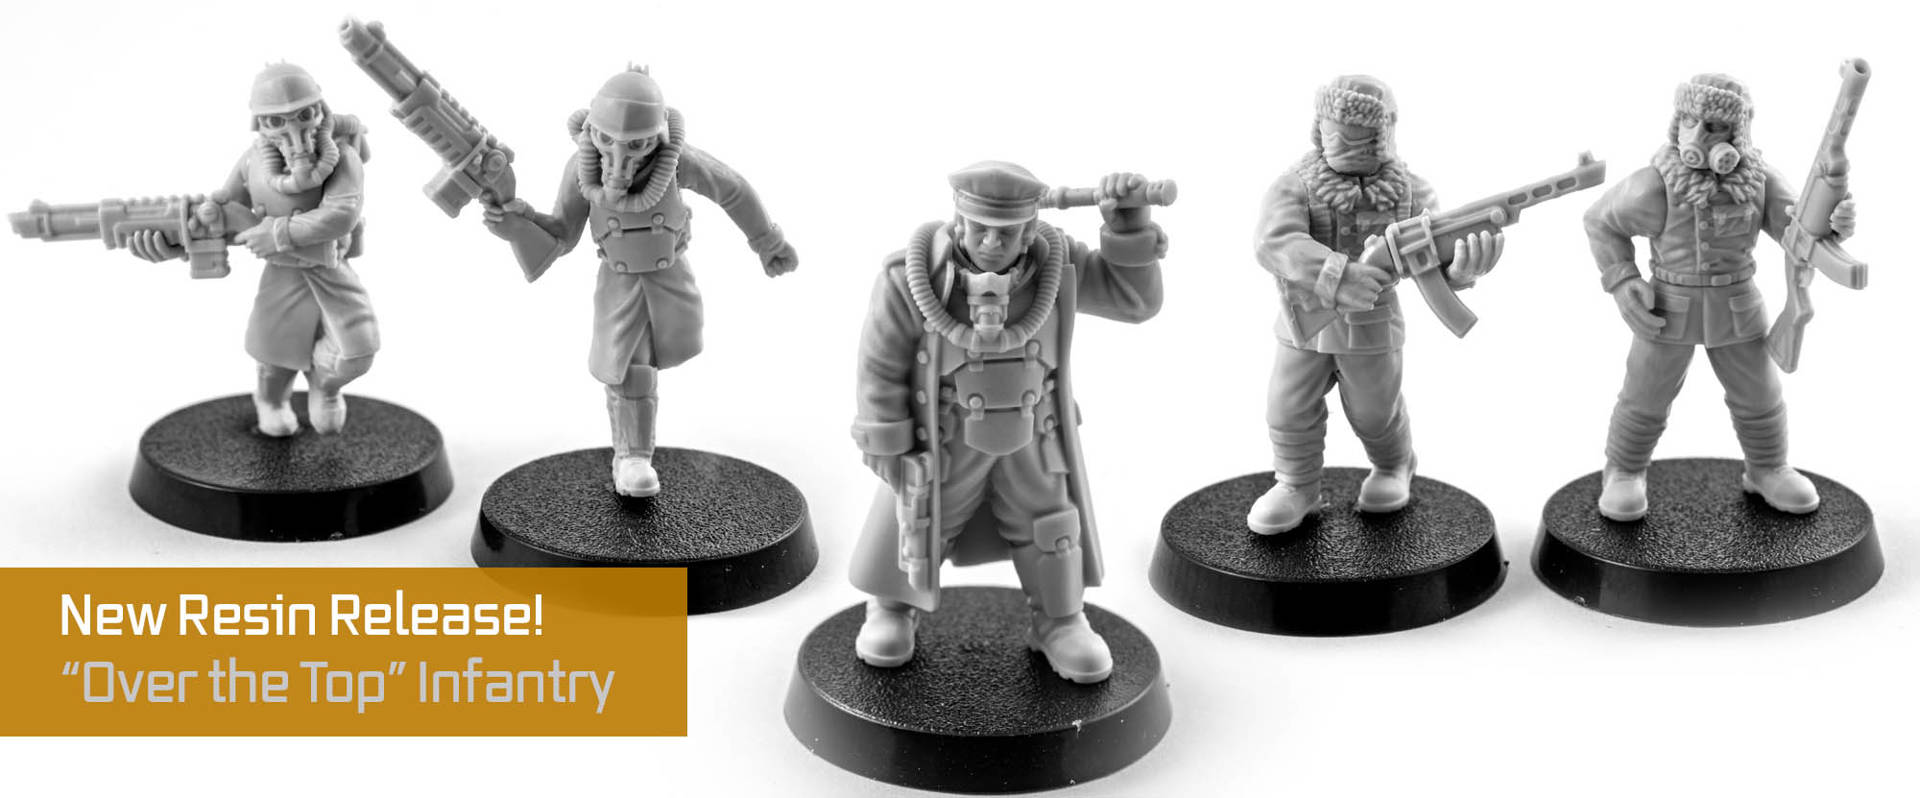 Trench Fighter Wargaming Miniatures